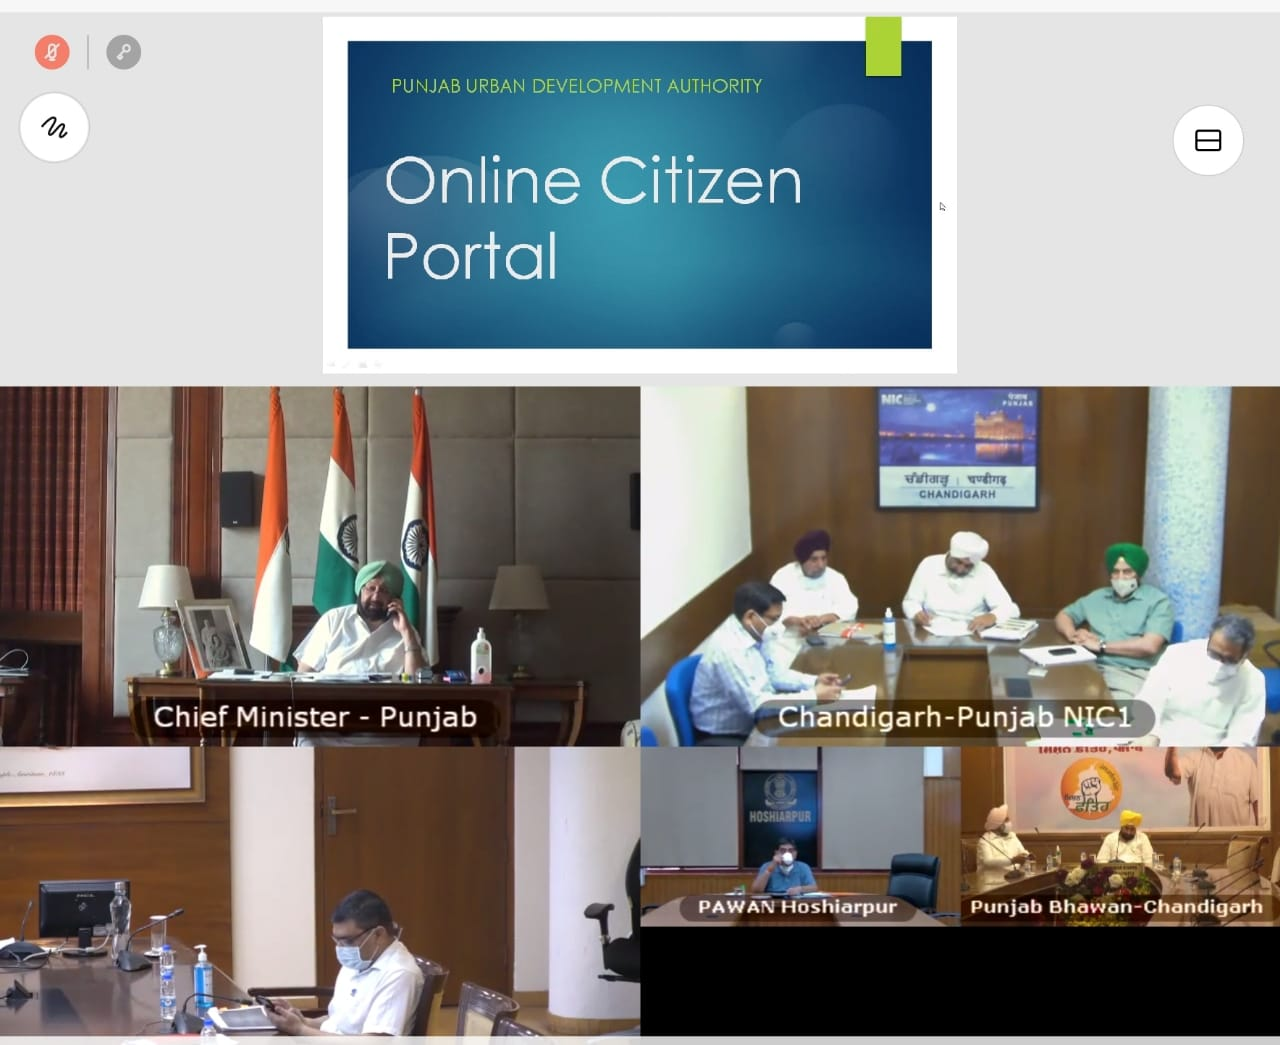 Punjab CM Captain Amarinder Singh launched an online citizen portal to provide all property-related services in a seamless manner.